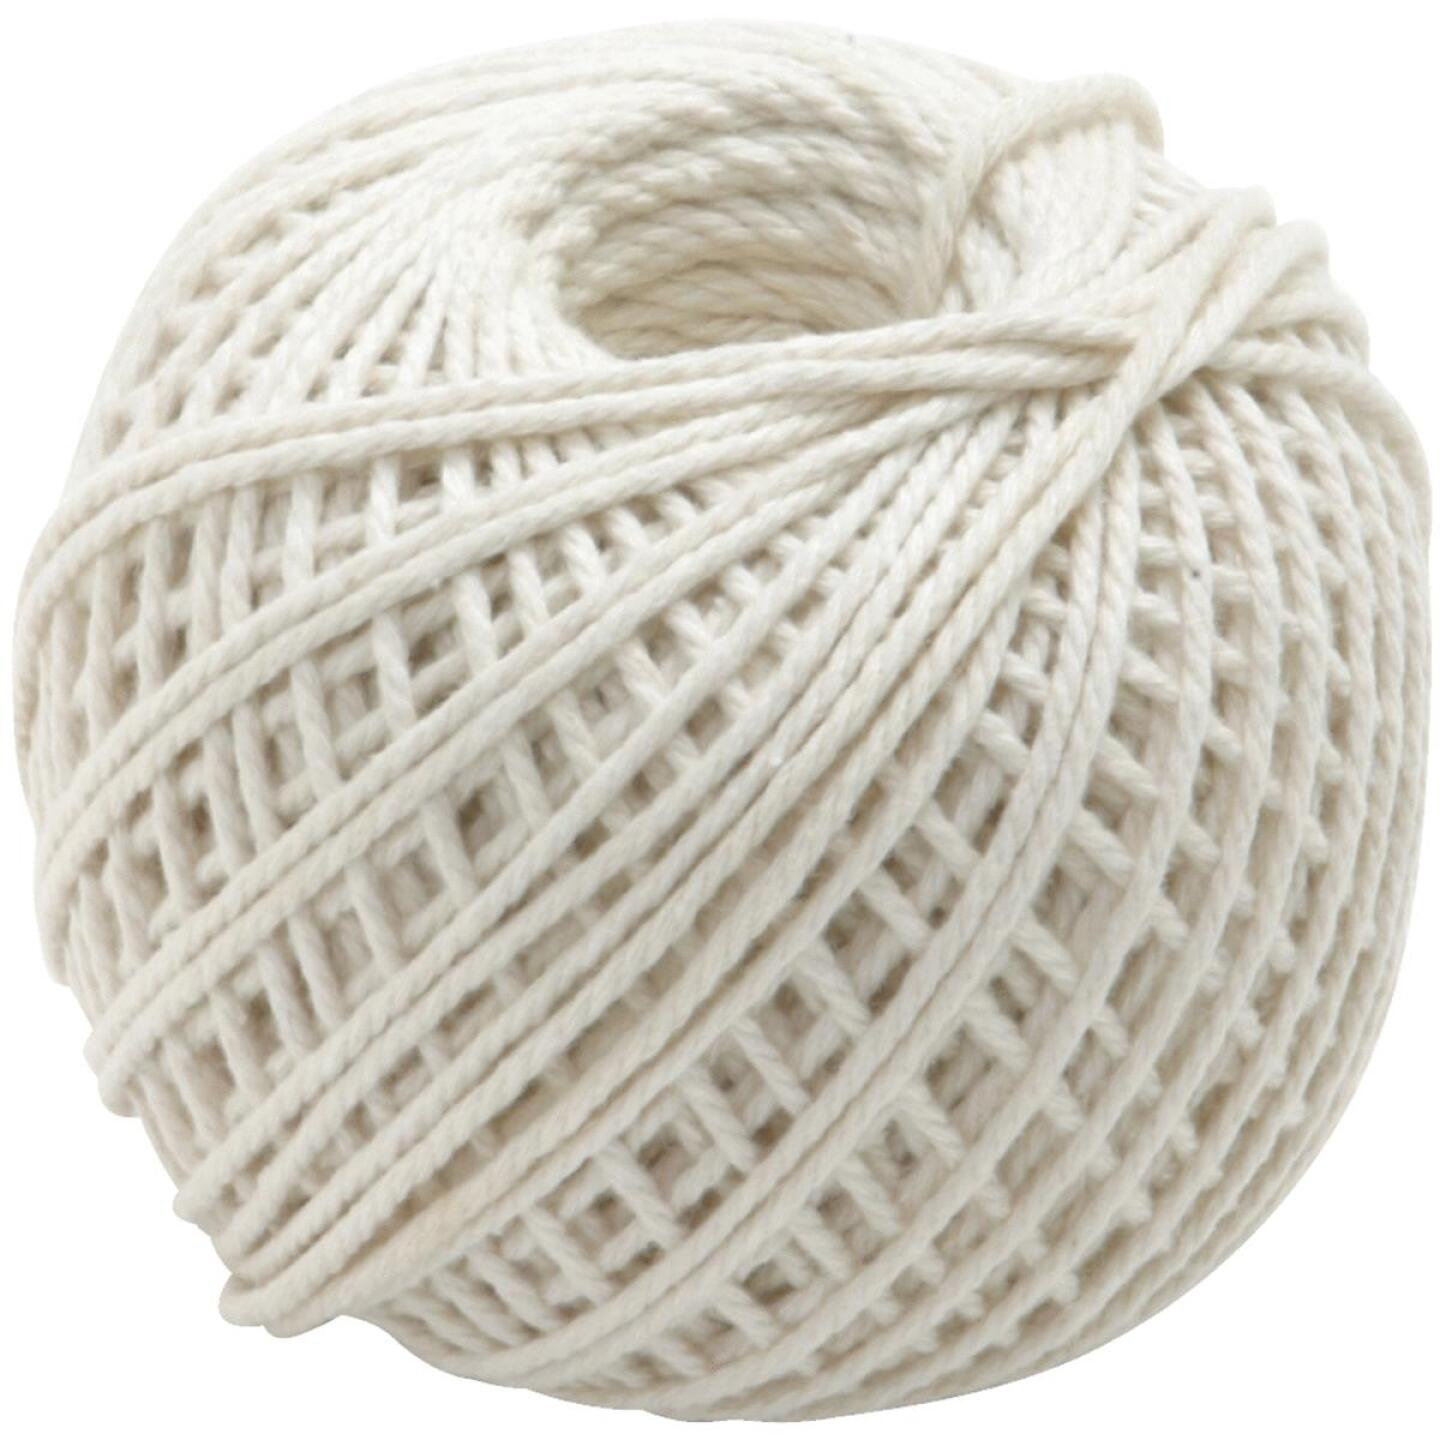 Norpro 100% Cotton Food Safe Twine Image 1